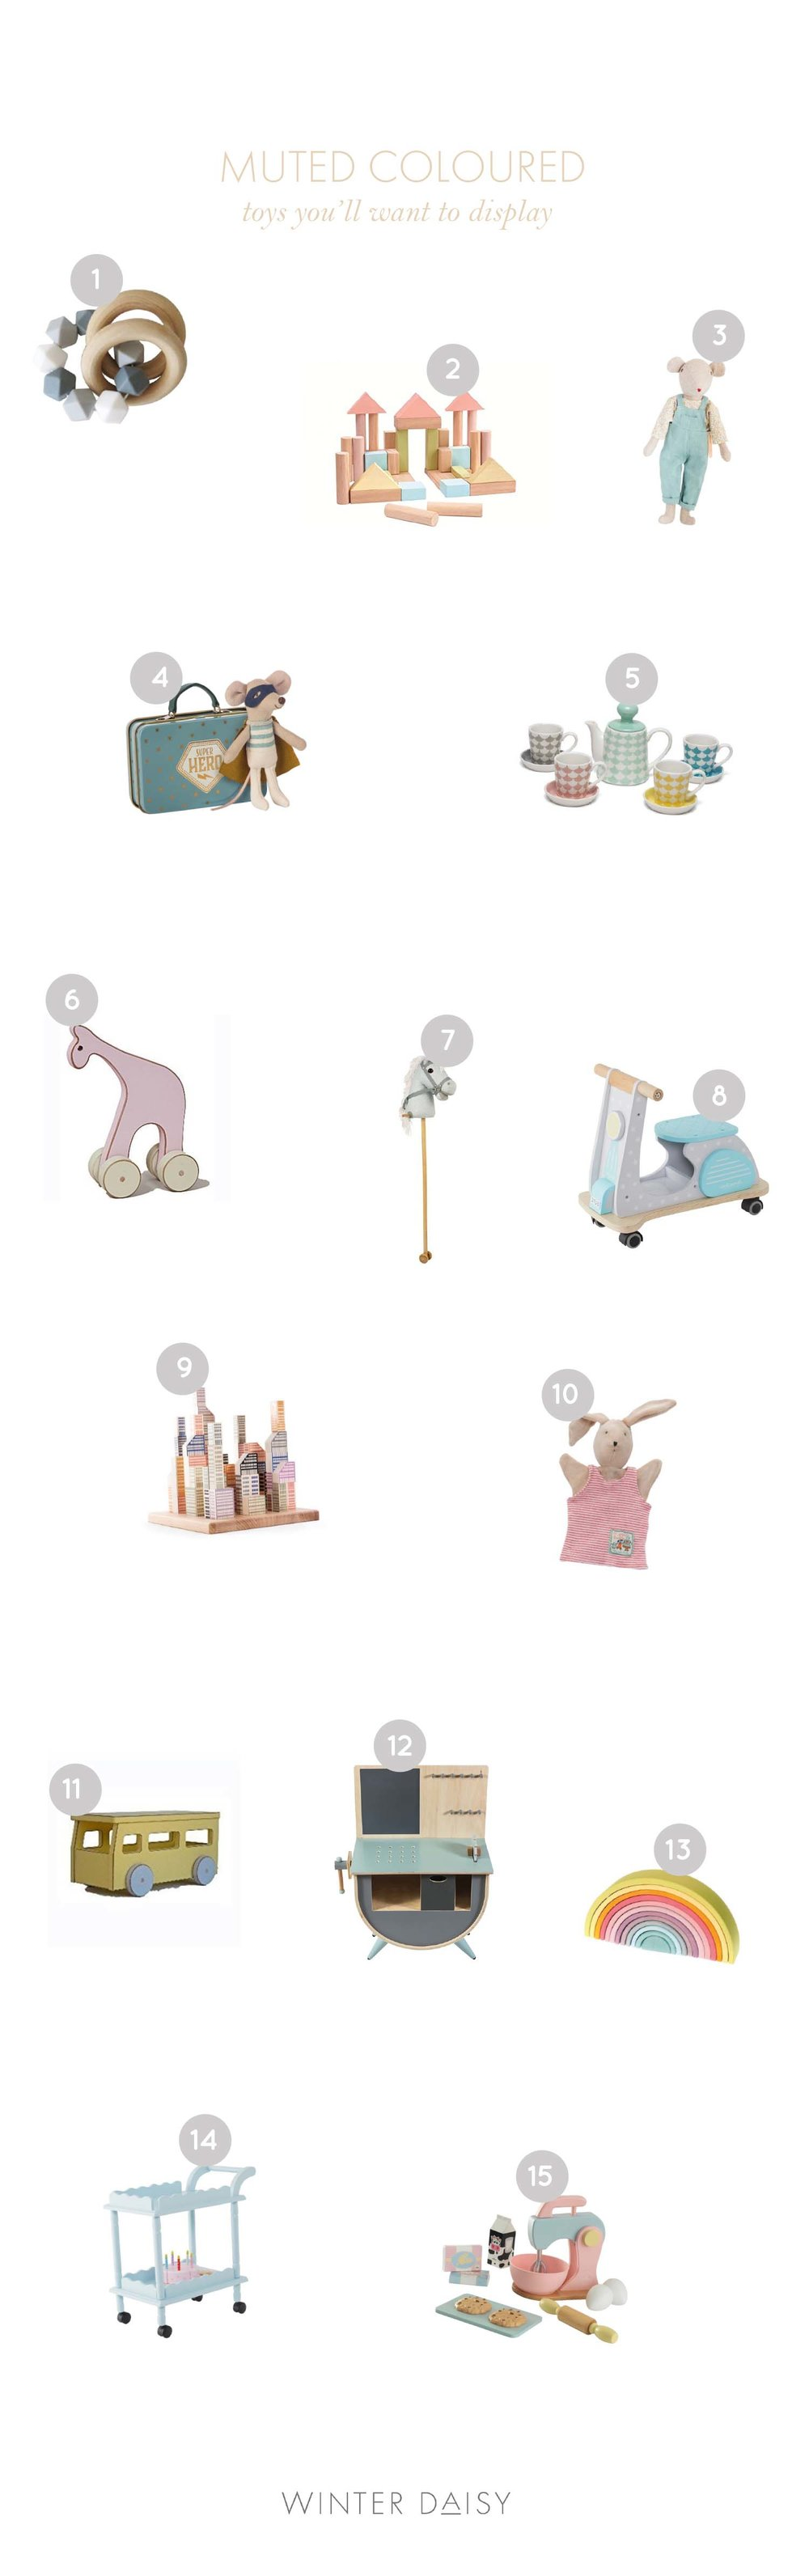 Pastel hued toys for kids